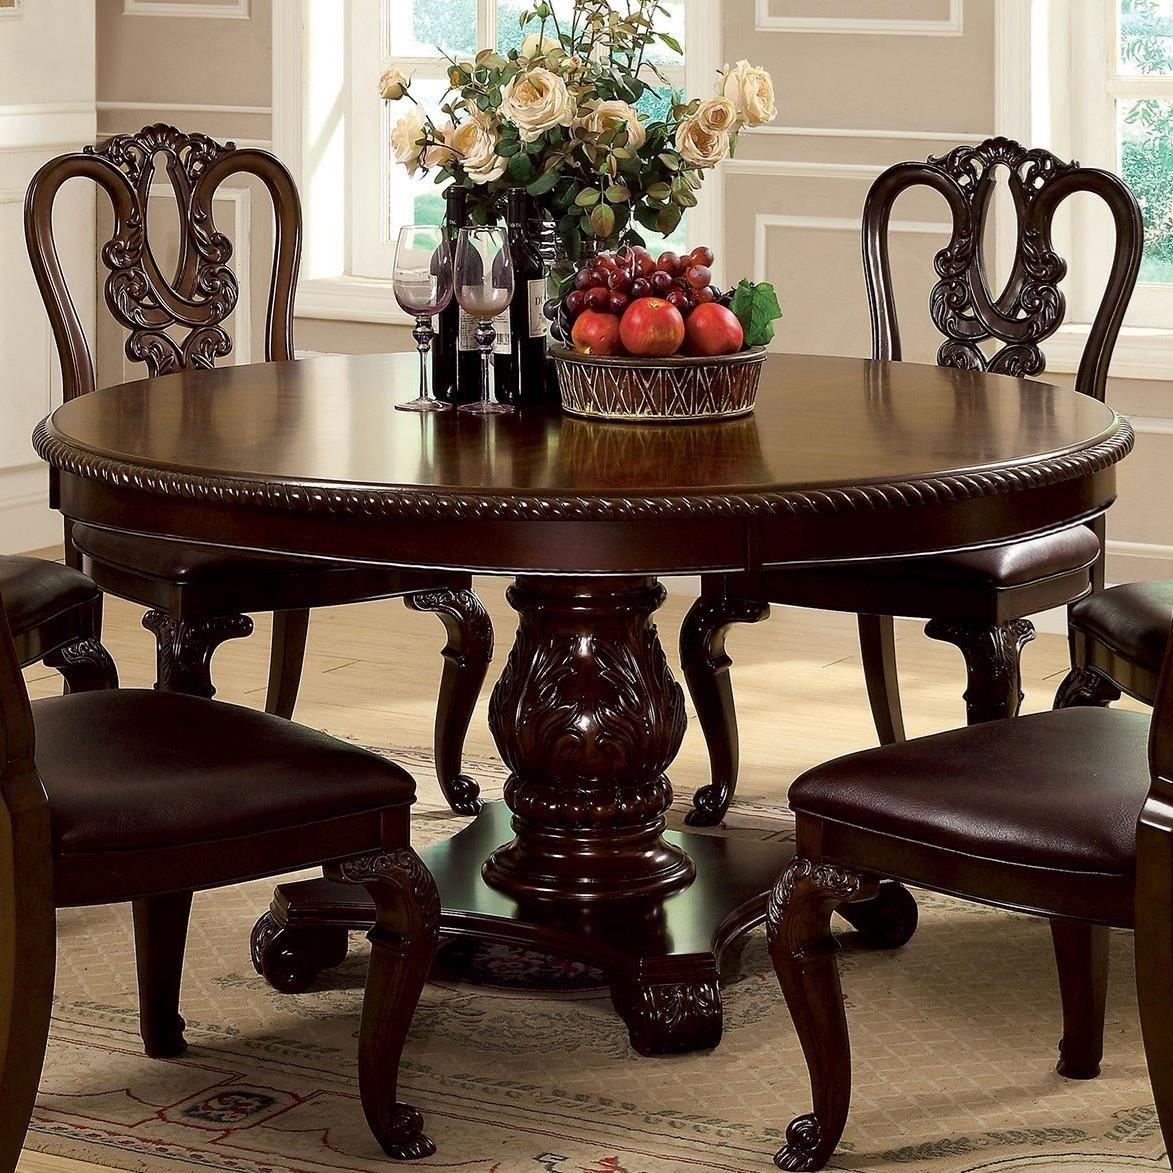 Furniture Of America Bellagio Traditional Round Dining Table With Carved Pedestal Base Dream Home Interiors Dining Tables